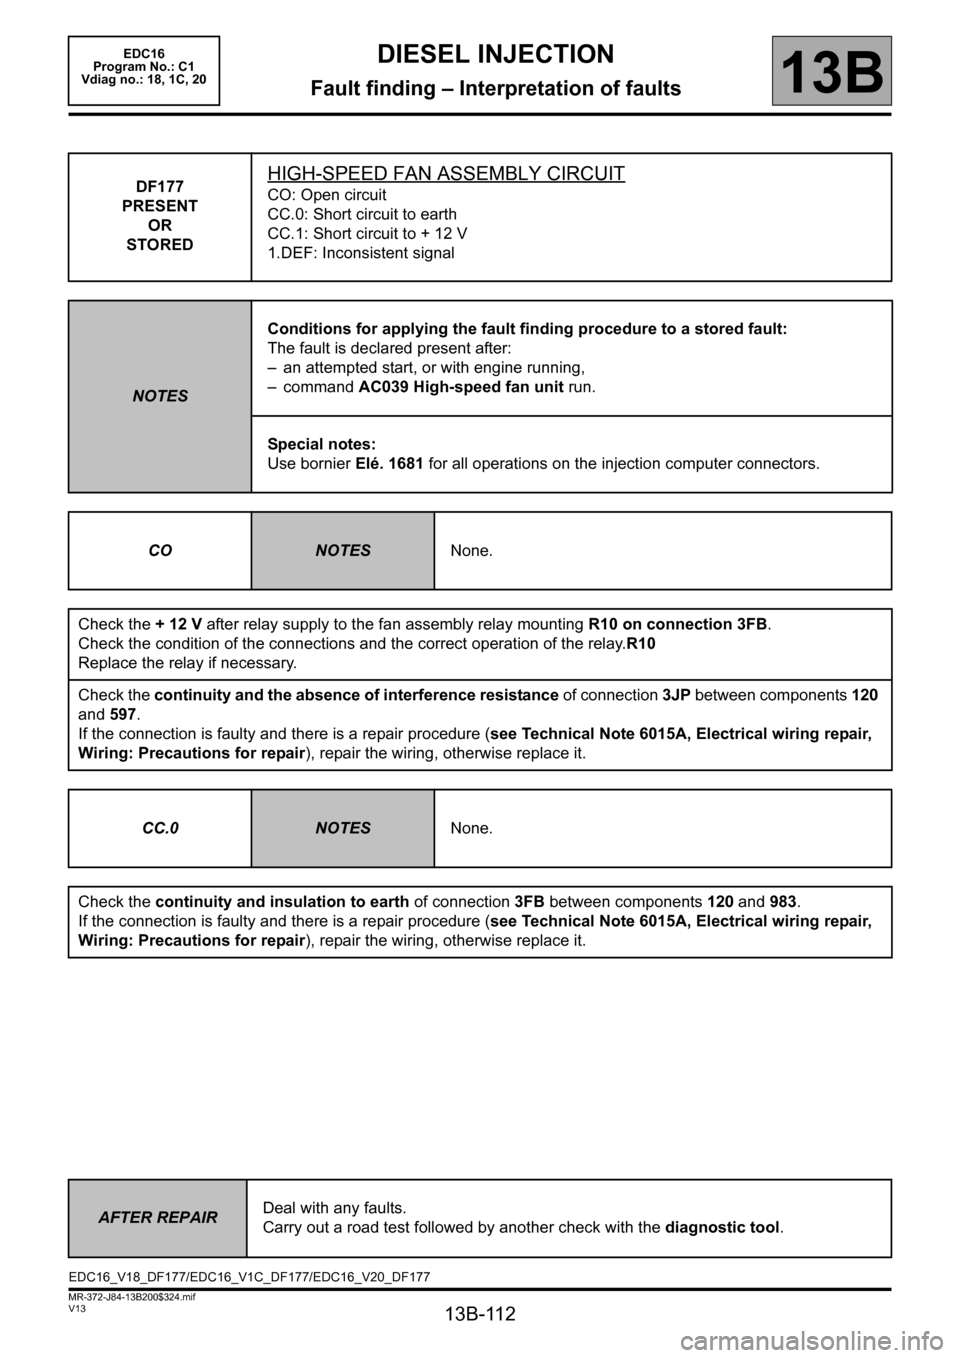 RENAULT SCENIC 2011 J95 / 3.G Engine And Peripherals EDC16 Workshop Manual, Page 112